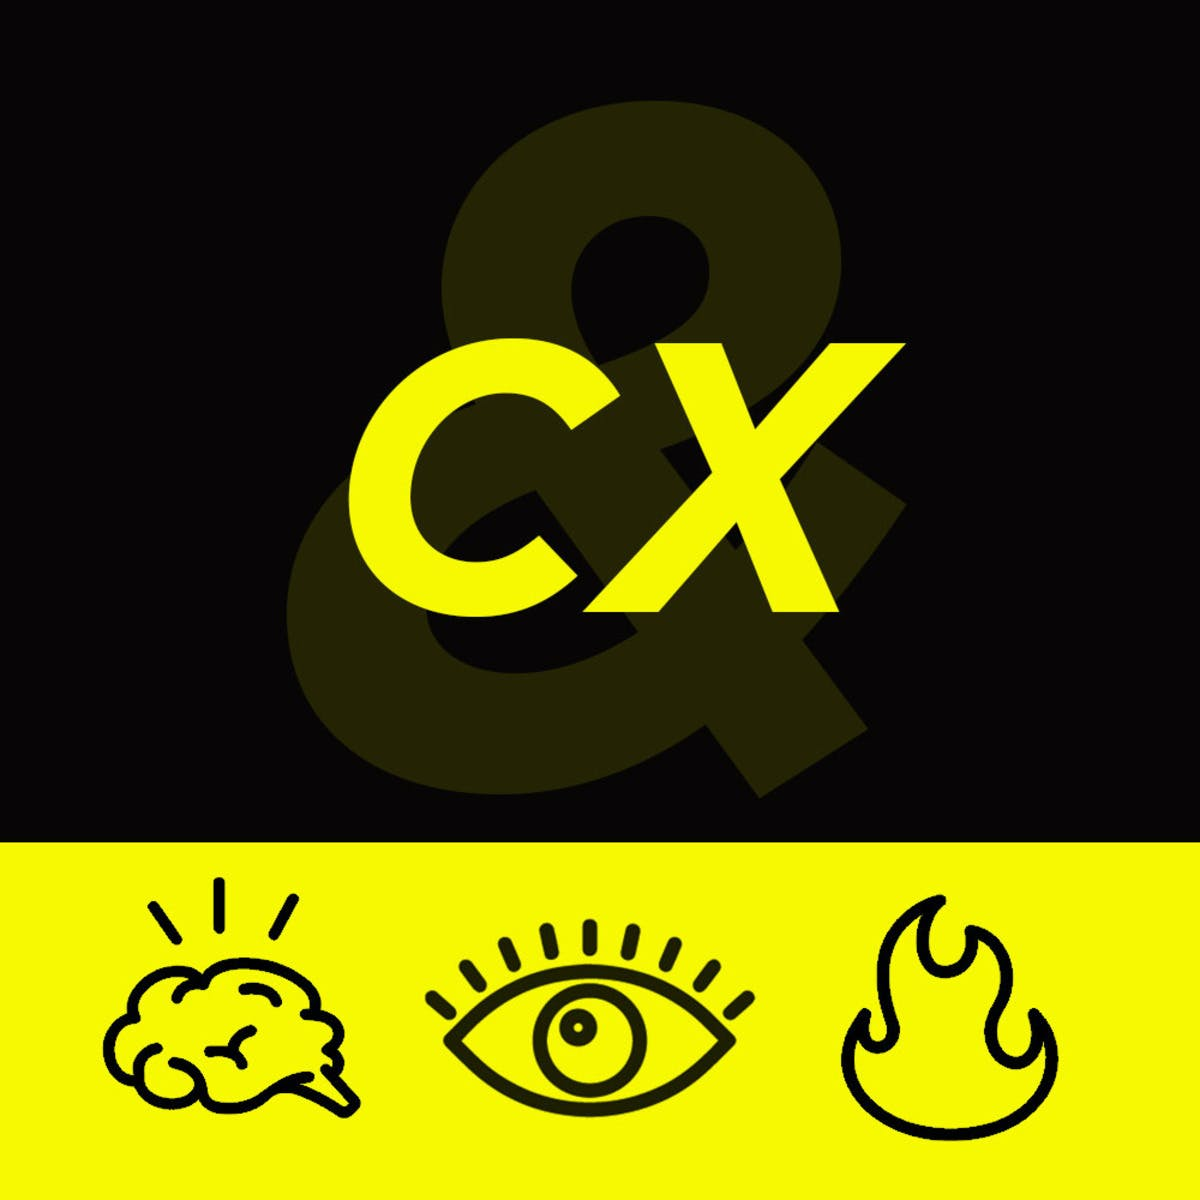 Branding and Customer Experience